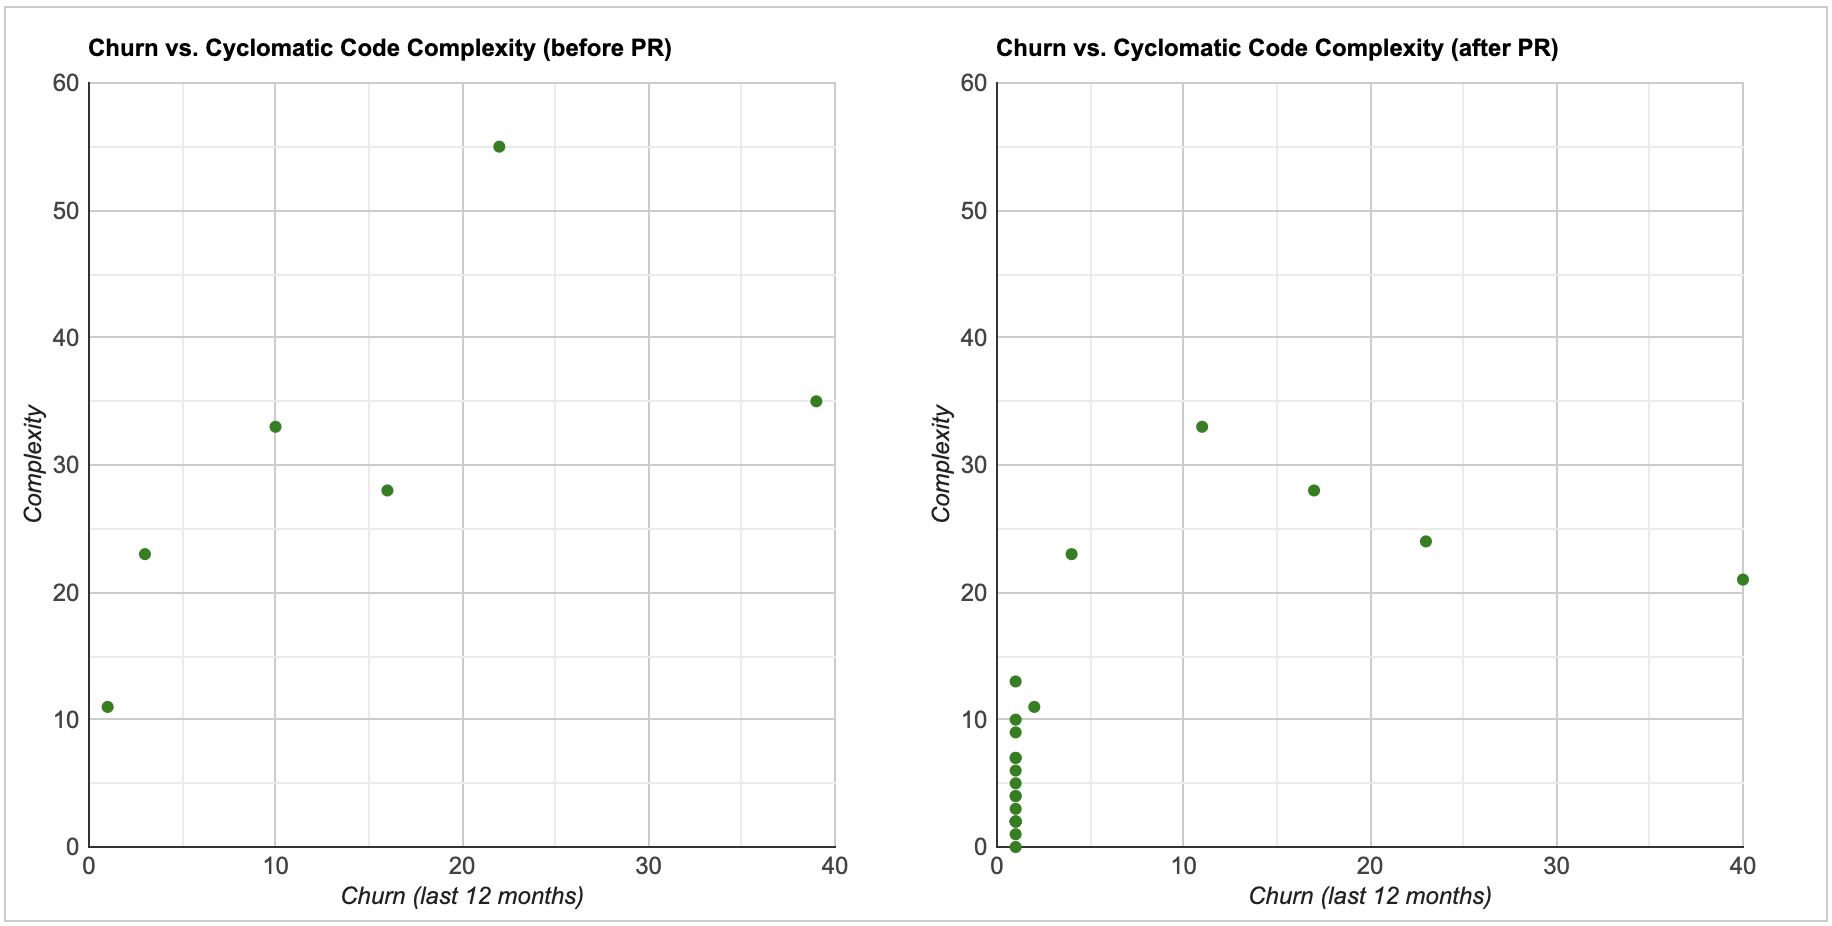 Churn vs complexity before and after a pull request